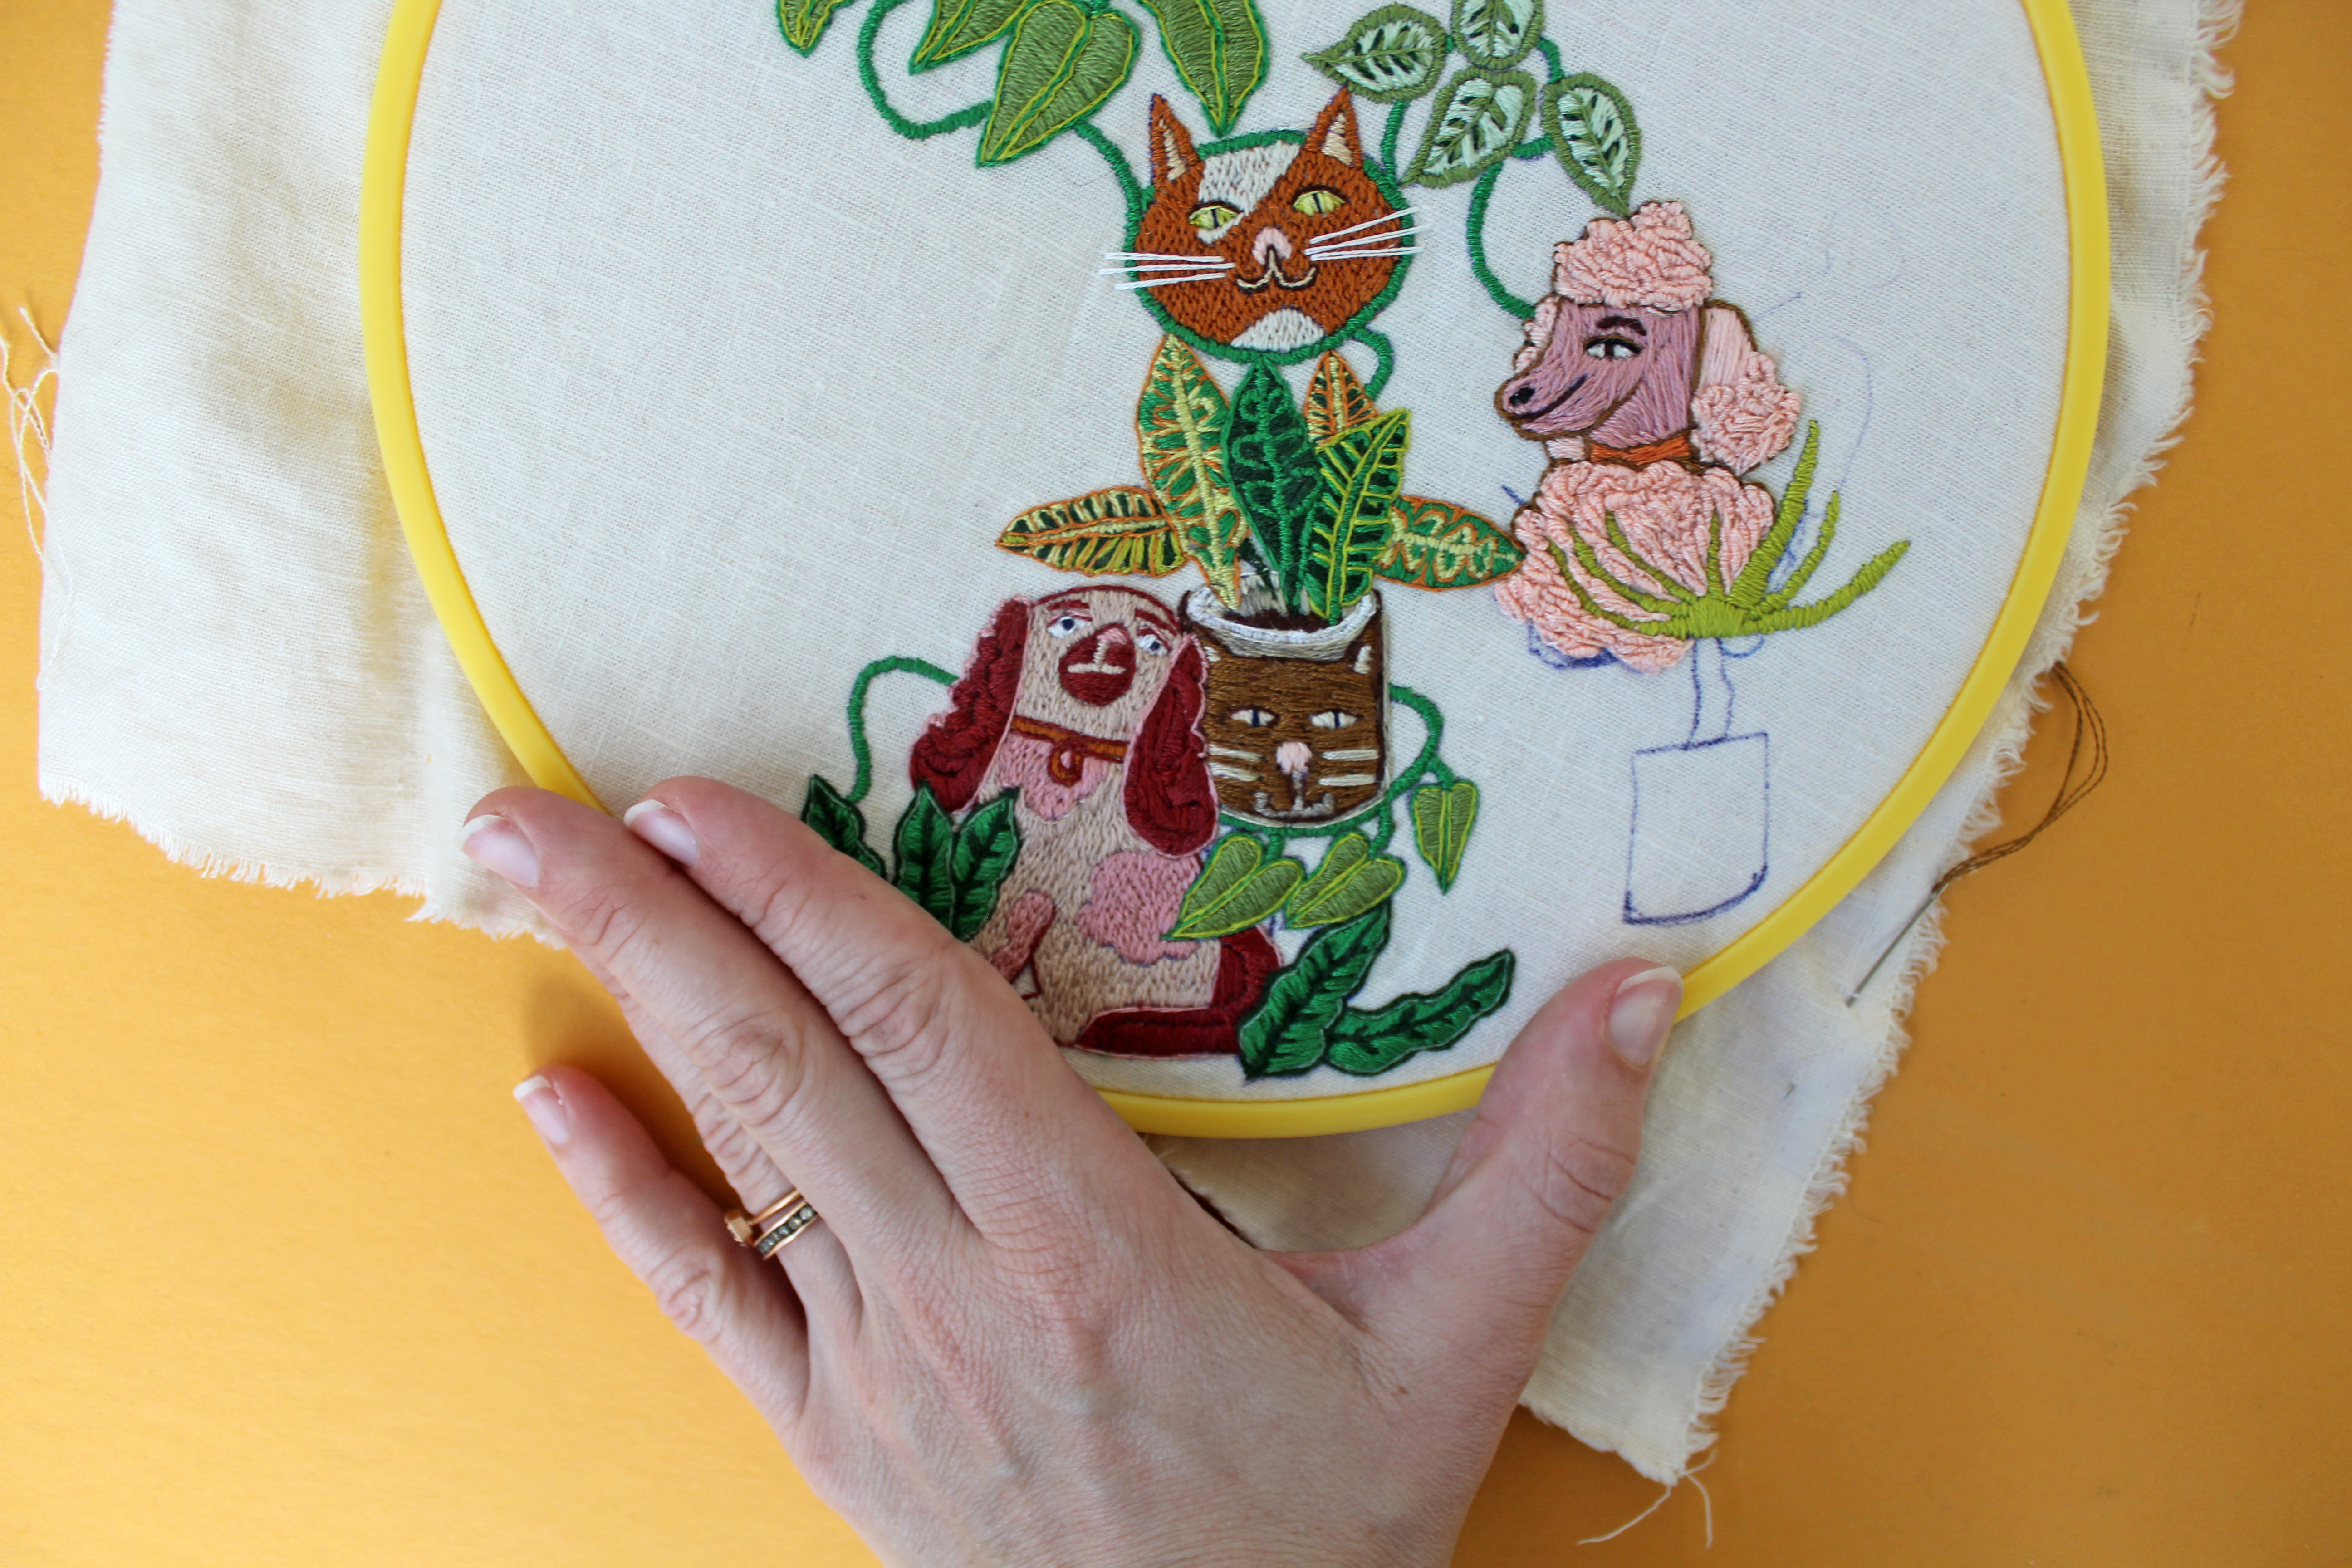 1 Year of Stitches hand embroidery by Sara Barnes